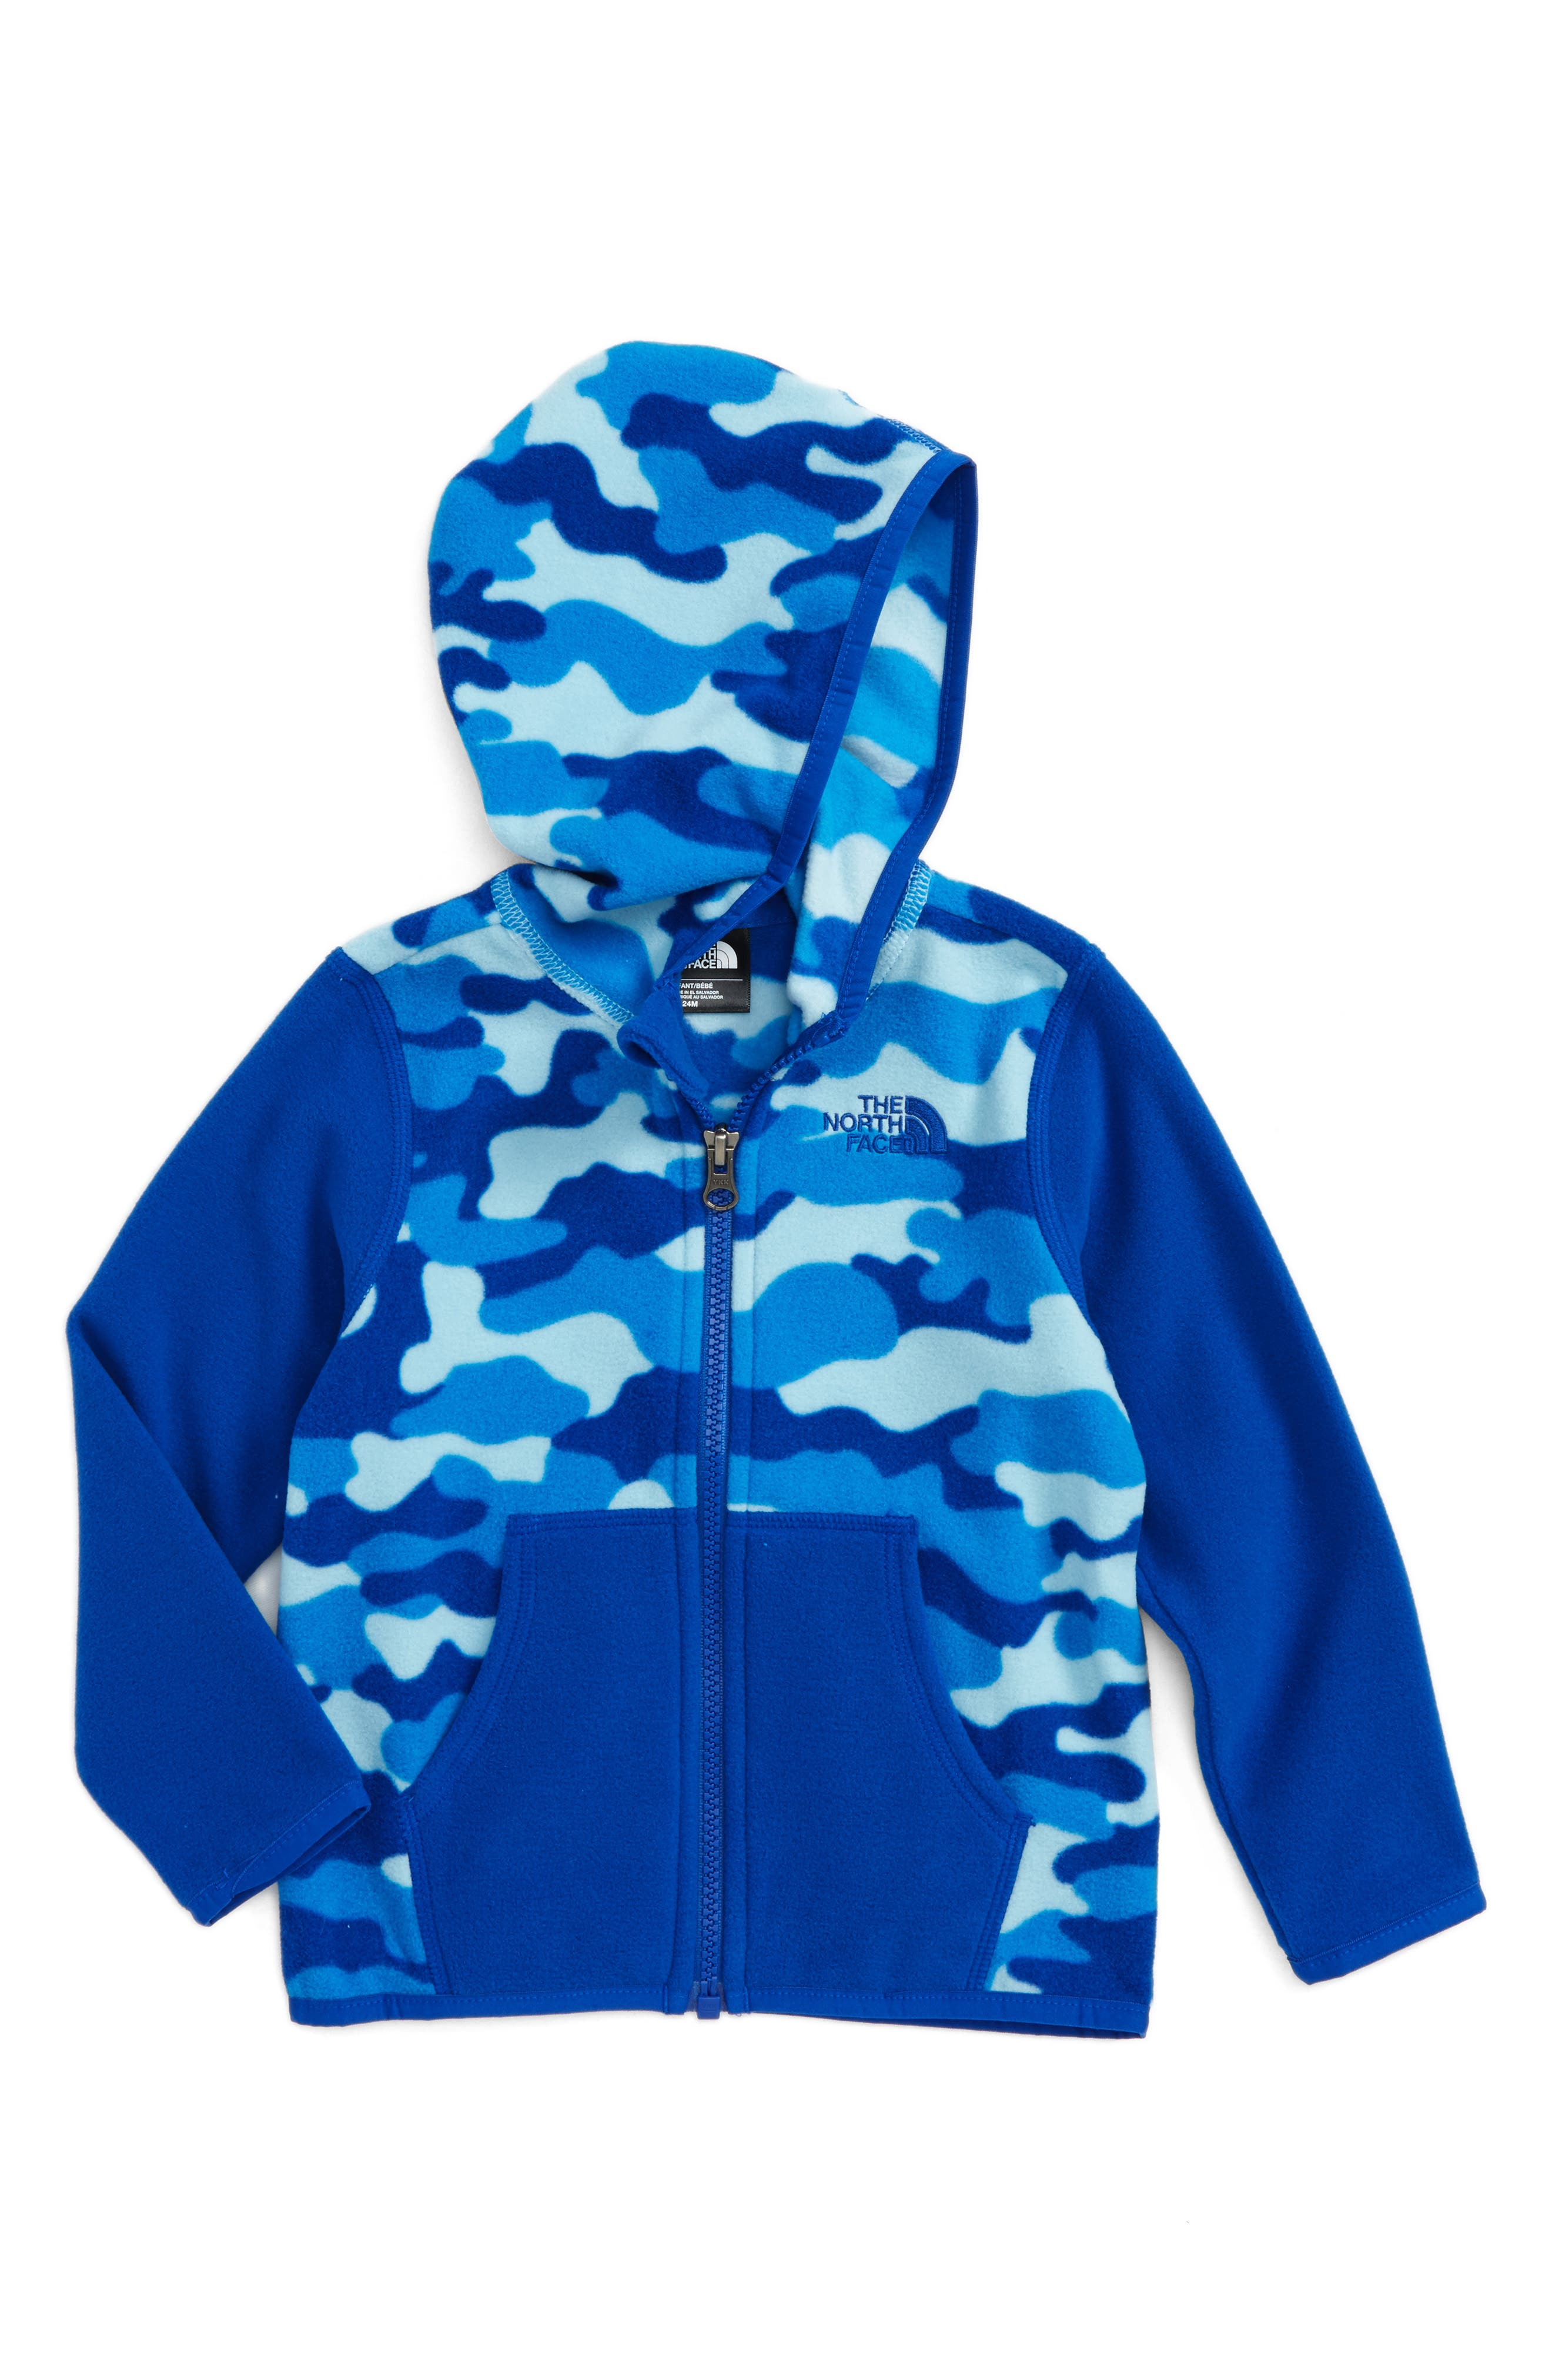 Alternate Image 1 Selected - The North Face 'Glacier' Zip Hoodie (Baby Boys)